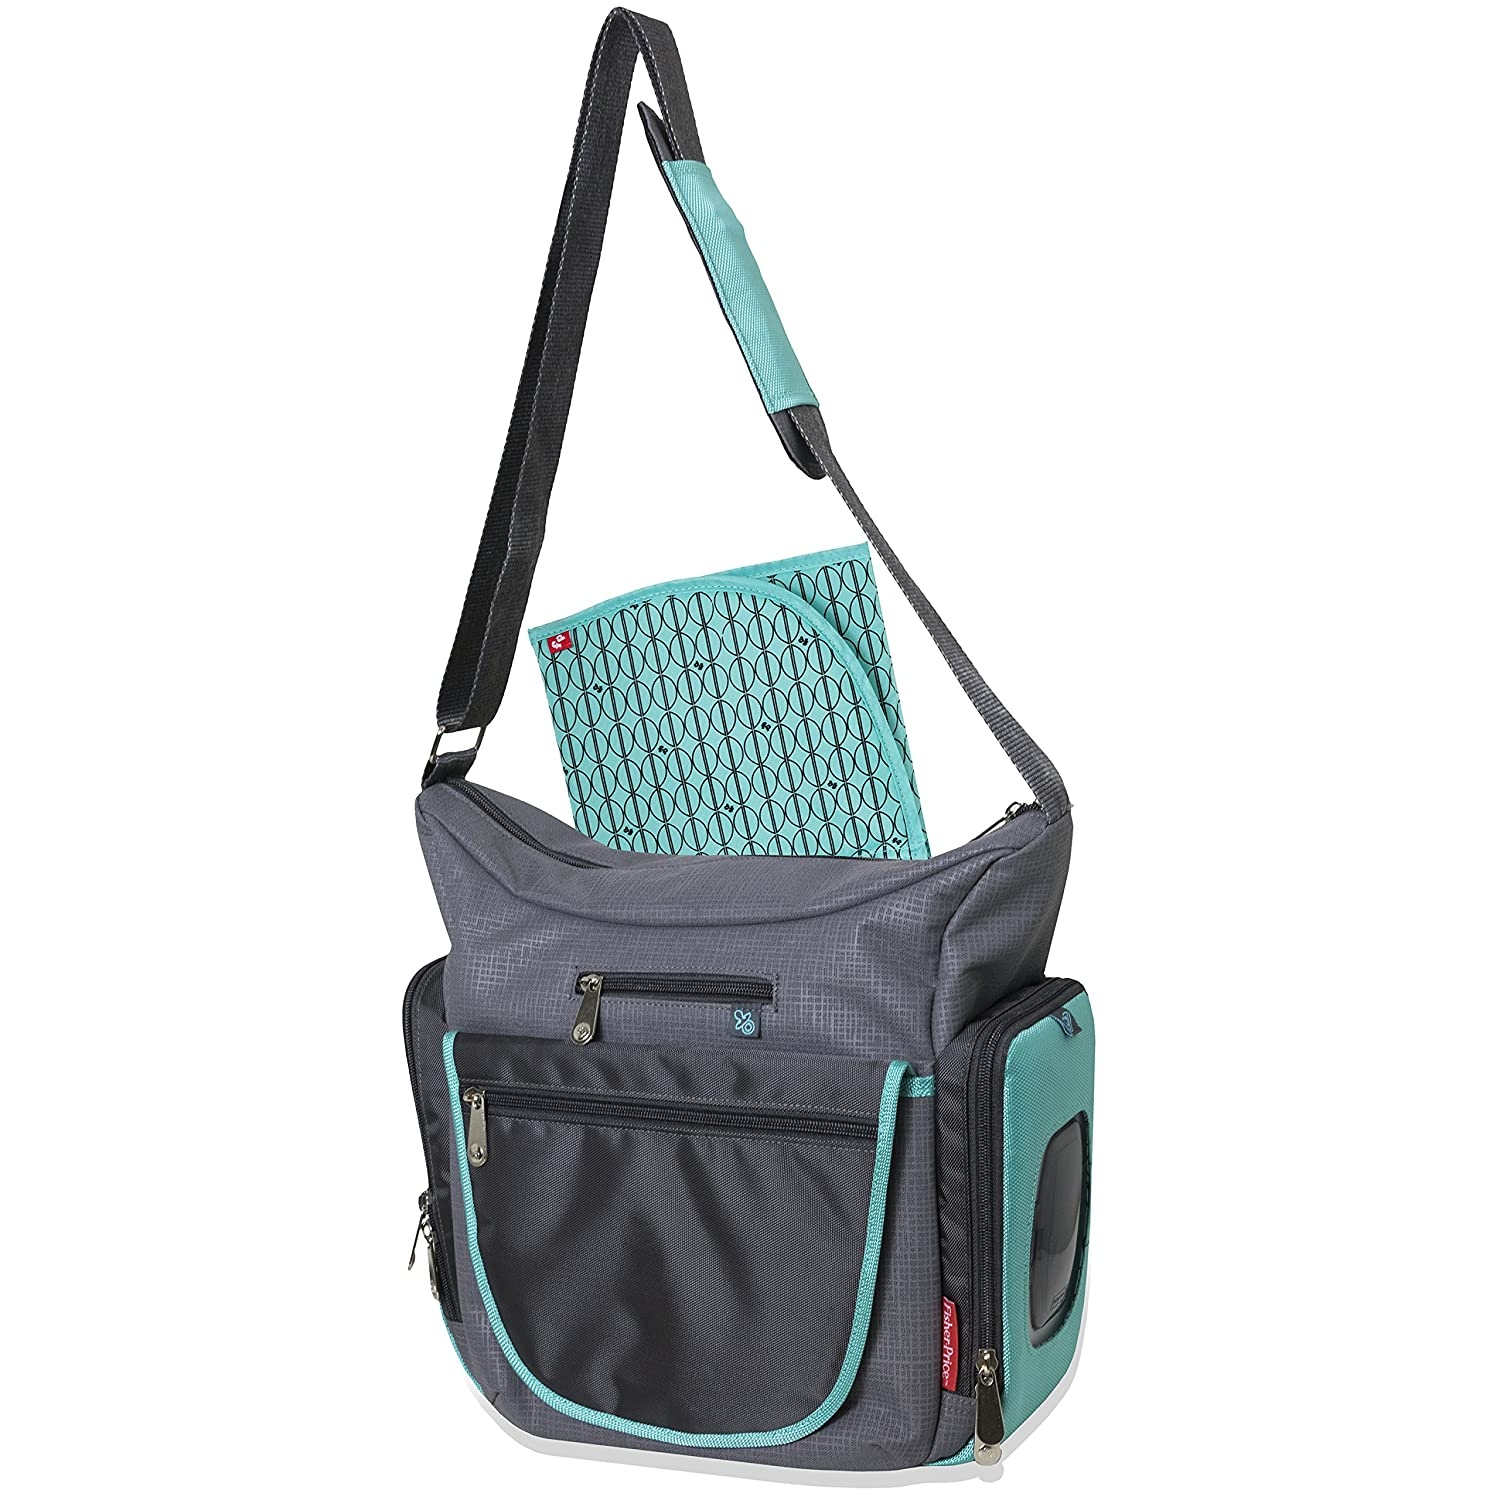 Fisher Price Fastfinder Quick Trip Tote Diaper Bag - Teal/Grey AD Sutton & Sons 91968